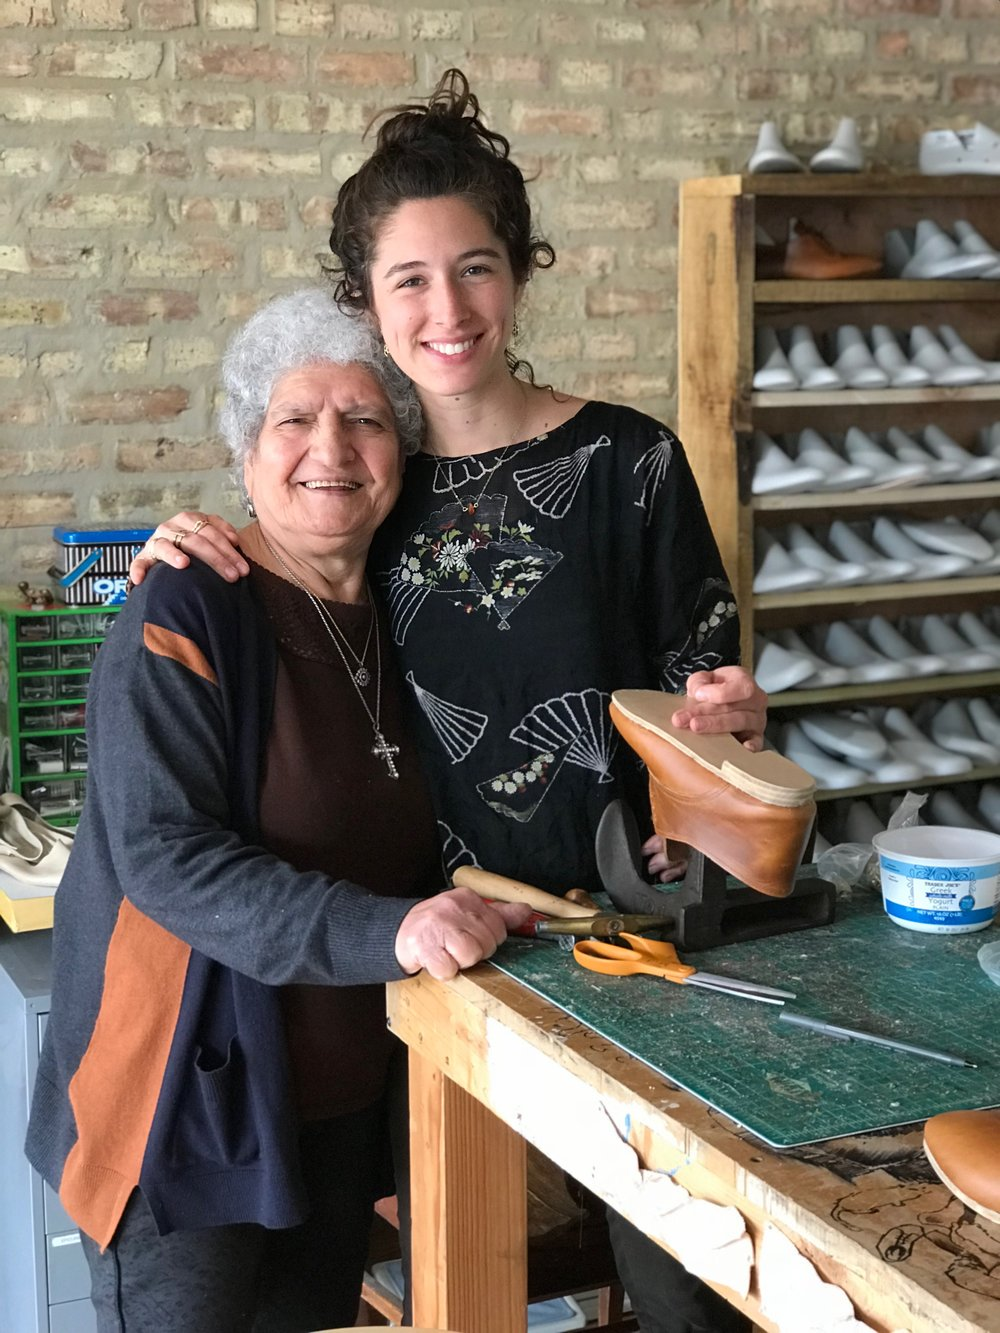 Photo: Showing my Grandma, a lifelong seamstress, how I make shoes in my studio.